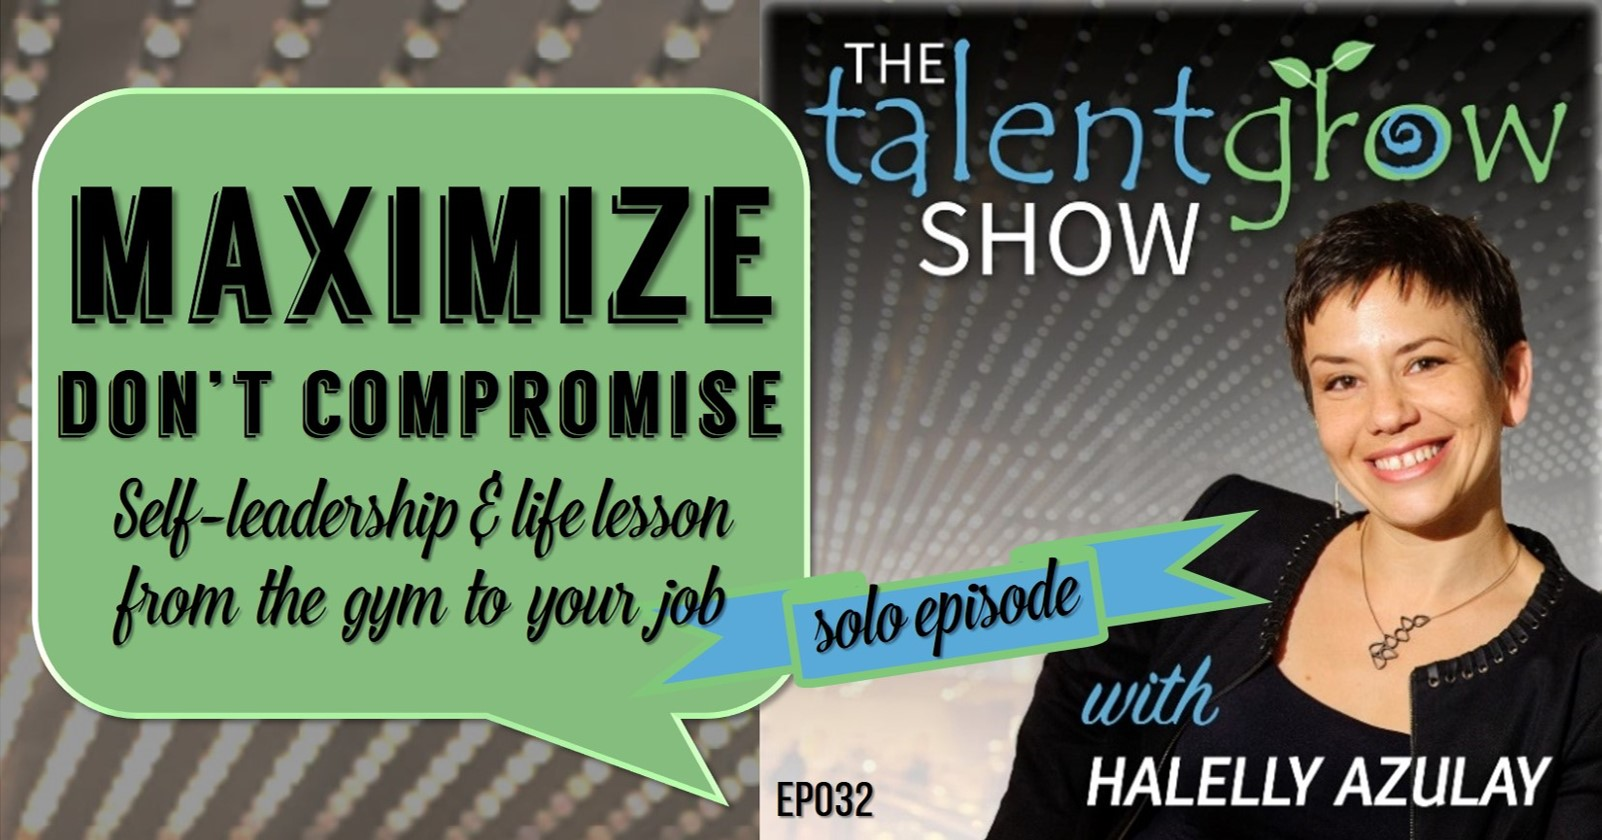 The TalentGrow Show podcast solo episode with Halelly Azulay Maximize don't compromise: self-leadership and life lesson from the gym to your job